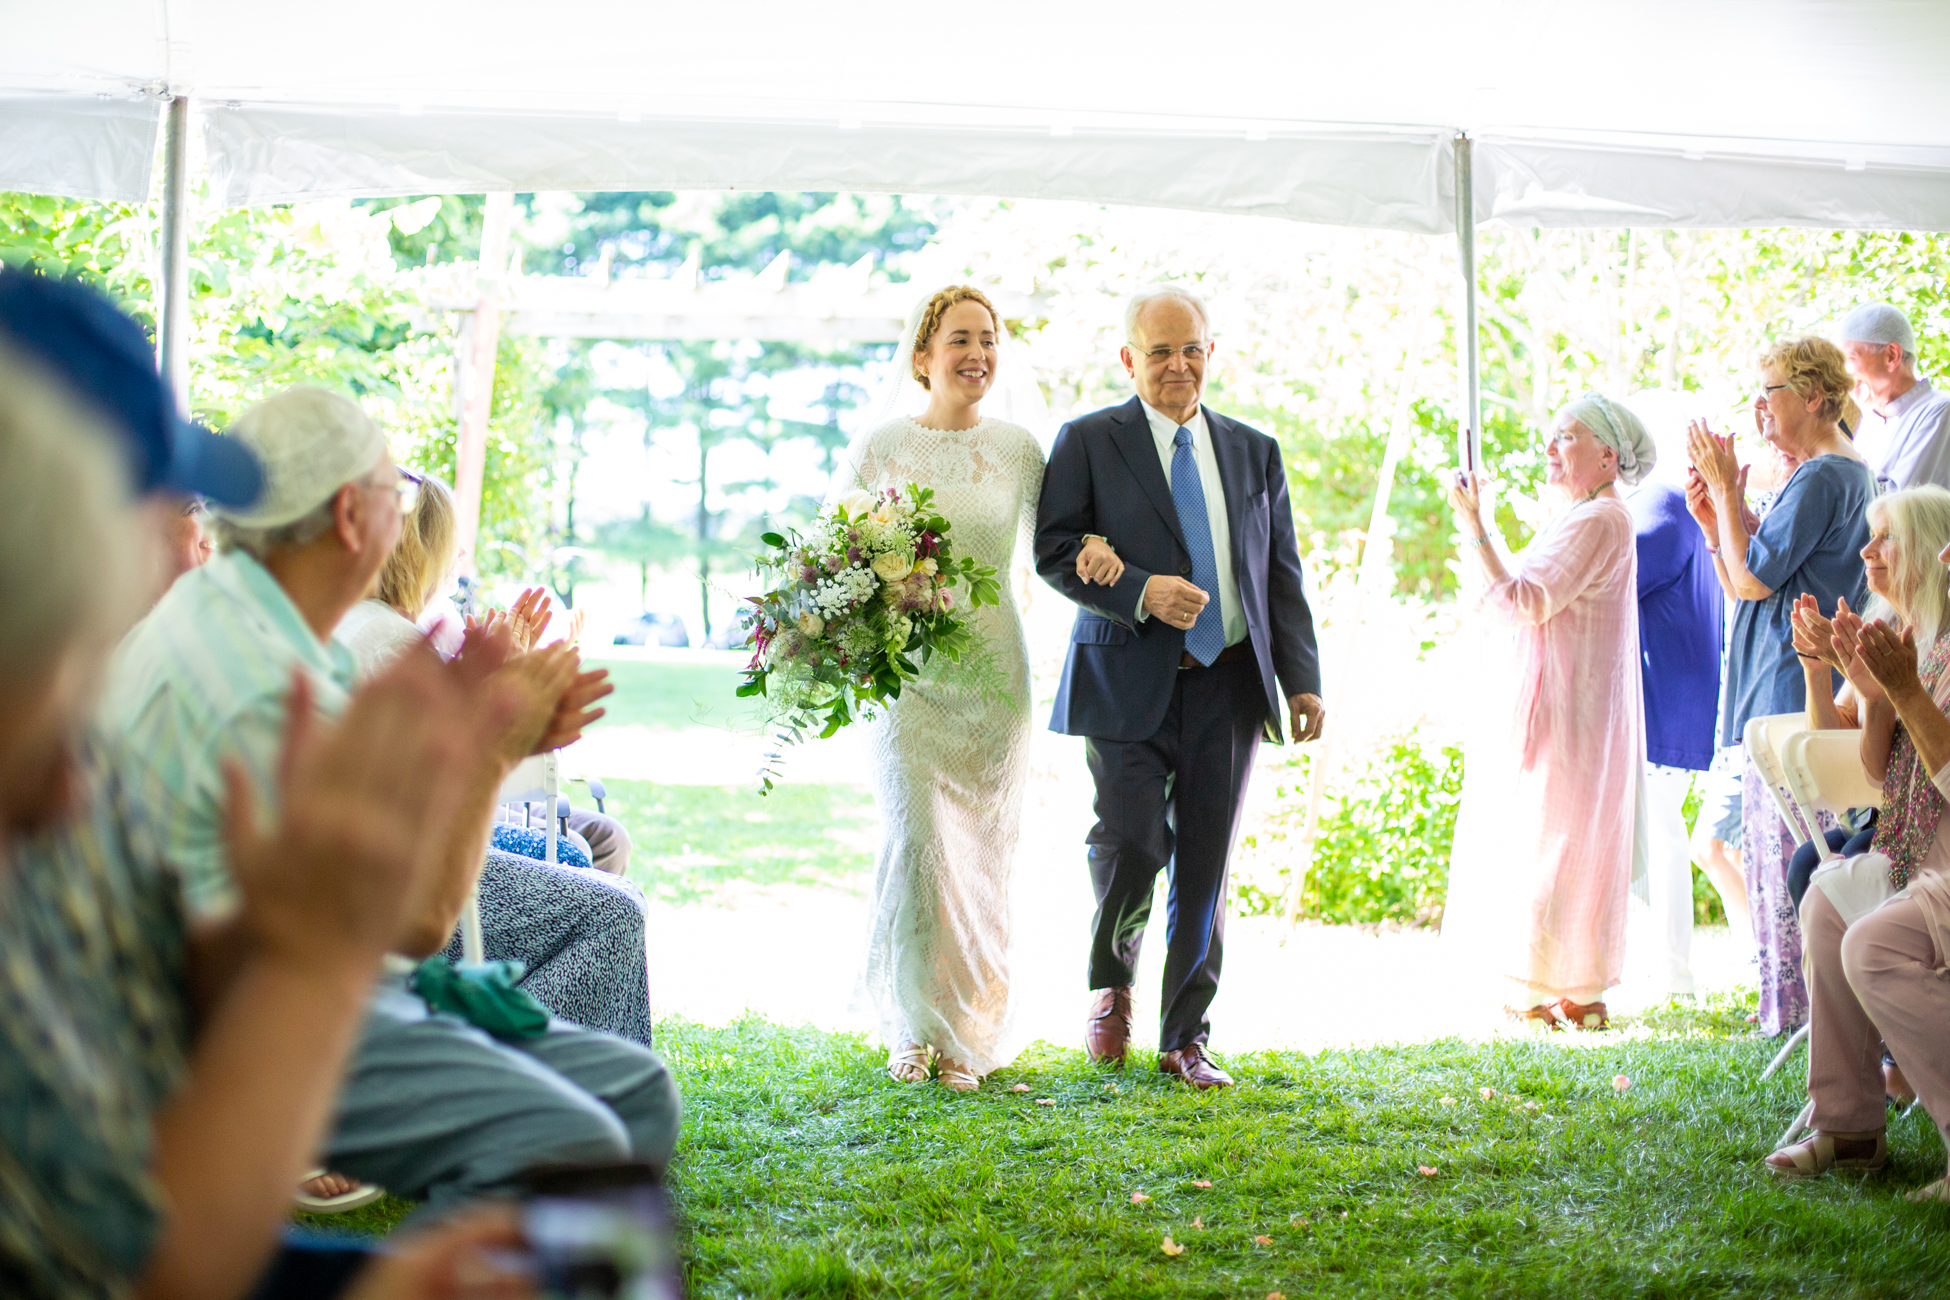 MaryFatimah and Noah's Summer Wedding at Bawa Muhaiyaddeen Fellowship Farm by Avi Loren Fox LLC-17.jpg